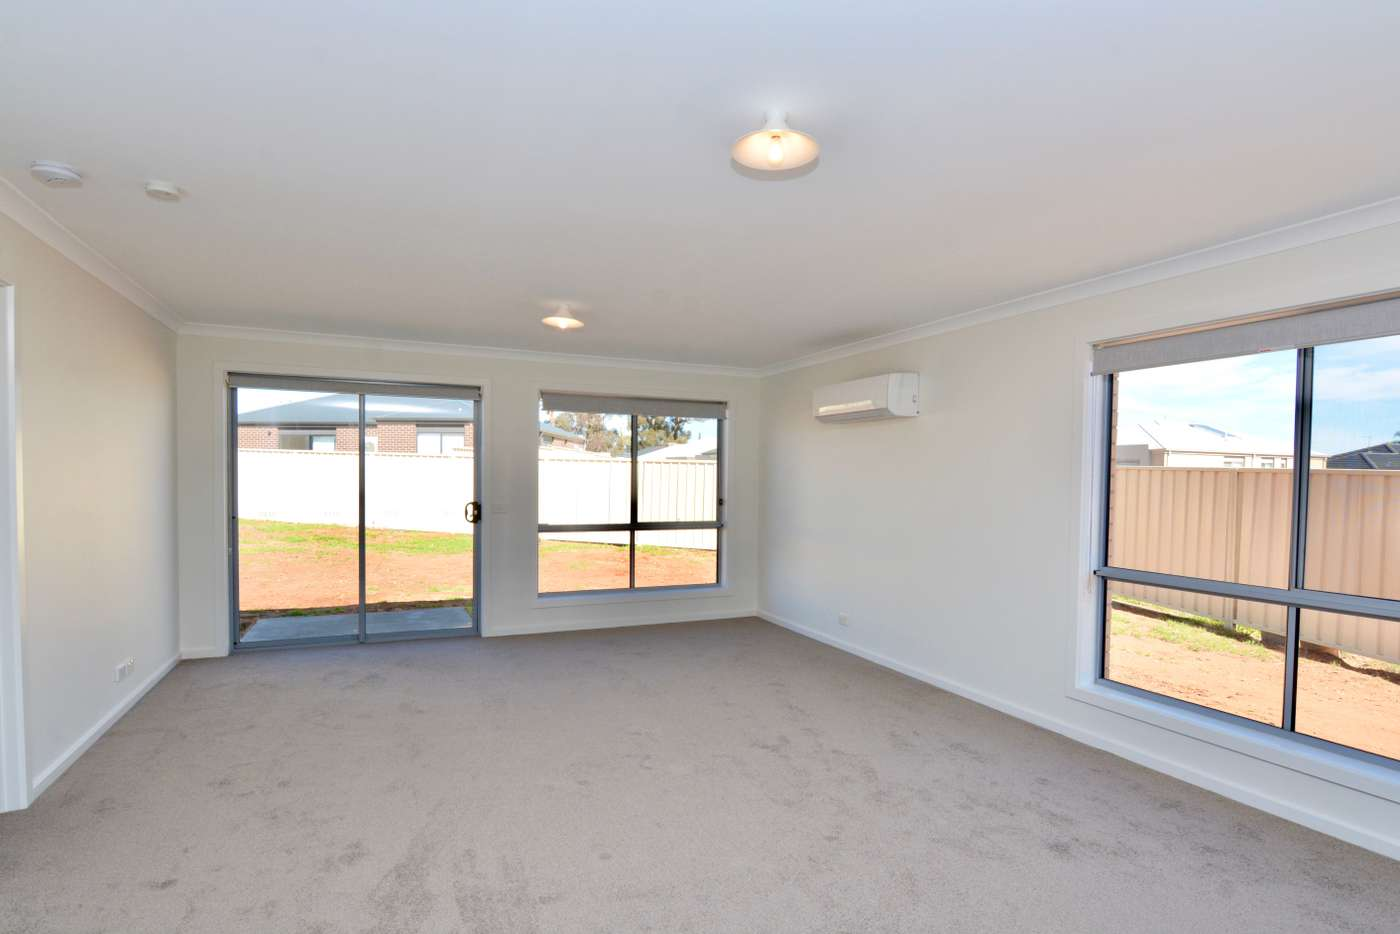 Sixth view of Homely house listing, 6 Harvard Court, Mildura VIC 3500